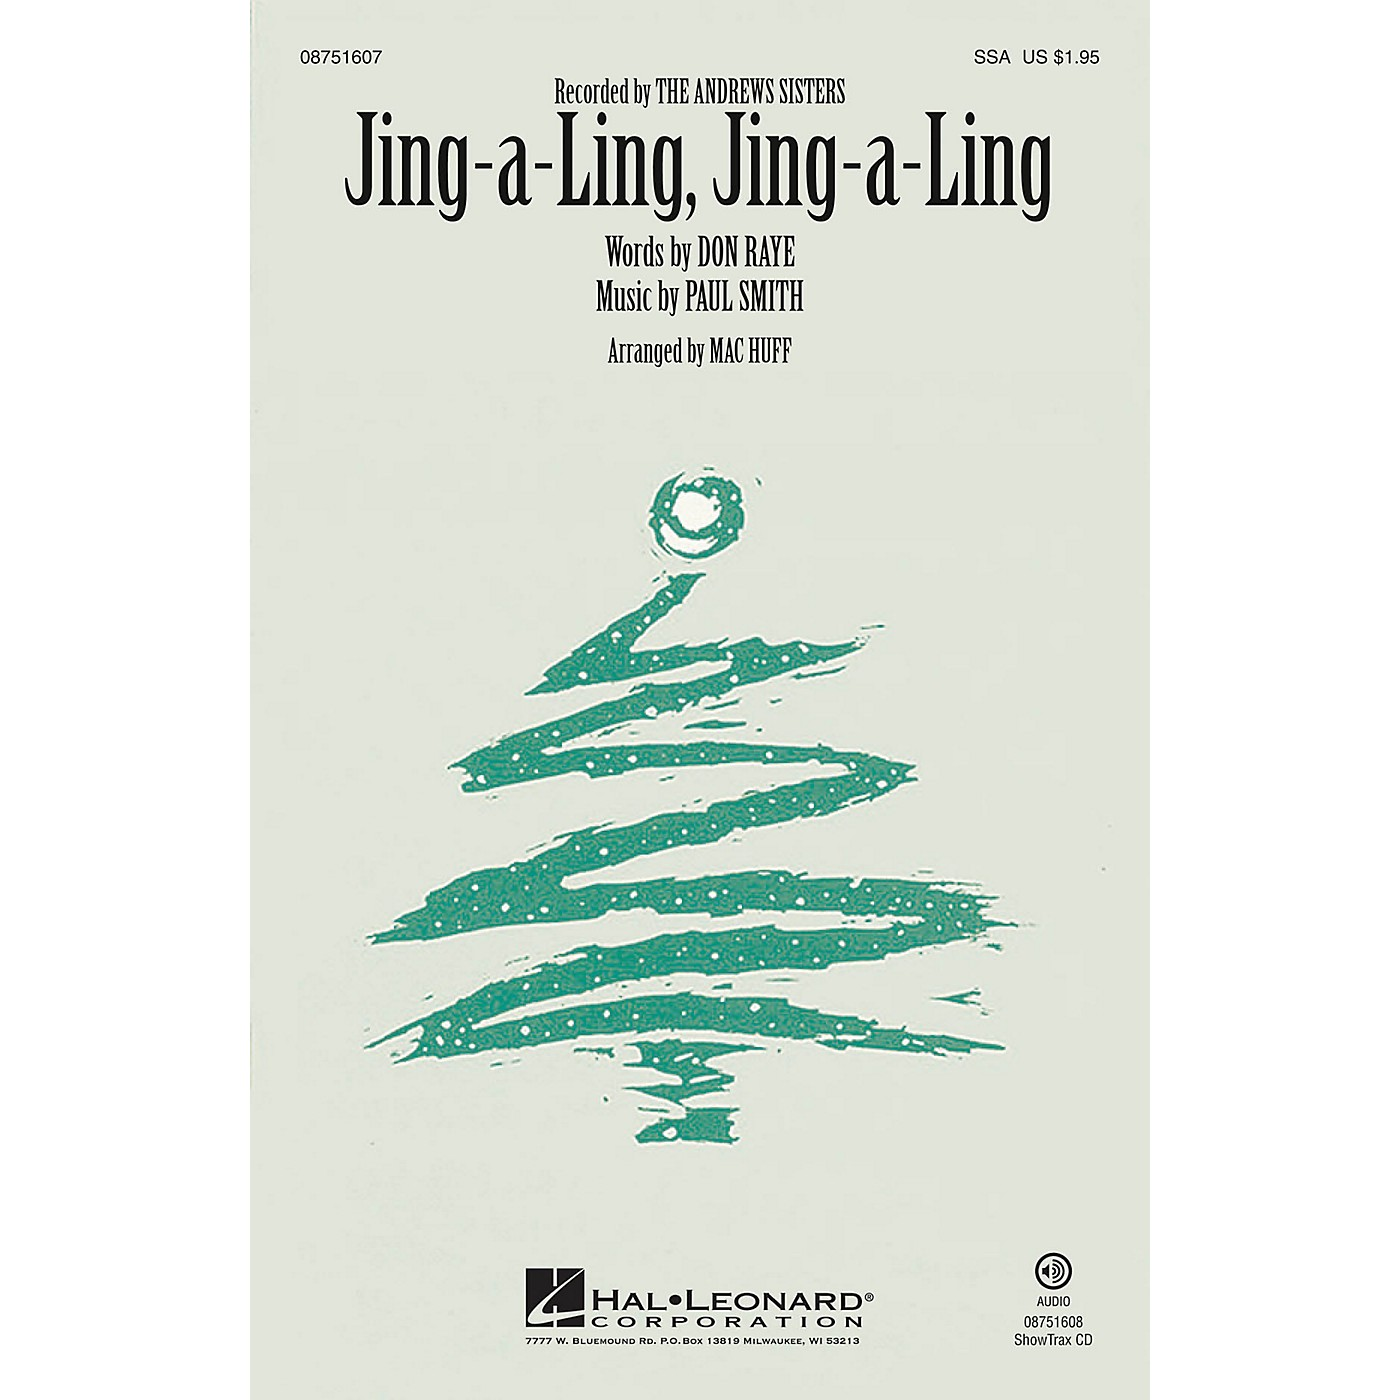 Hal Leonard Jing-a-Ling, Jing-a-Ling ShowTrax CD by The Andrews Sisters Arranged by Mac Huff thumbnail